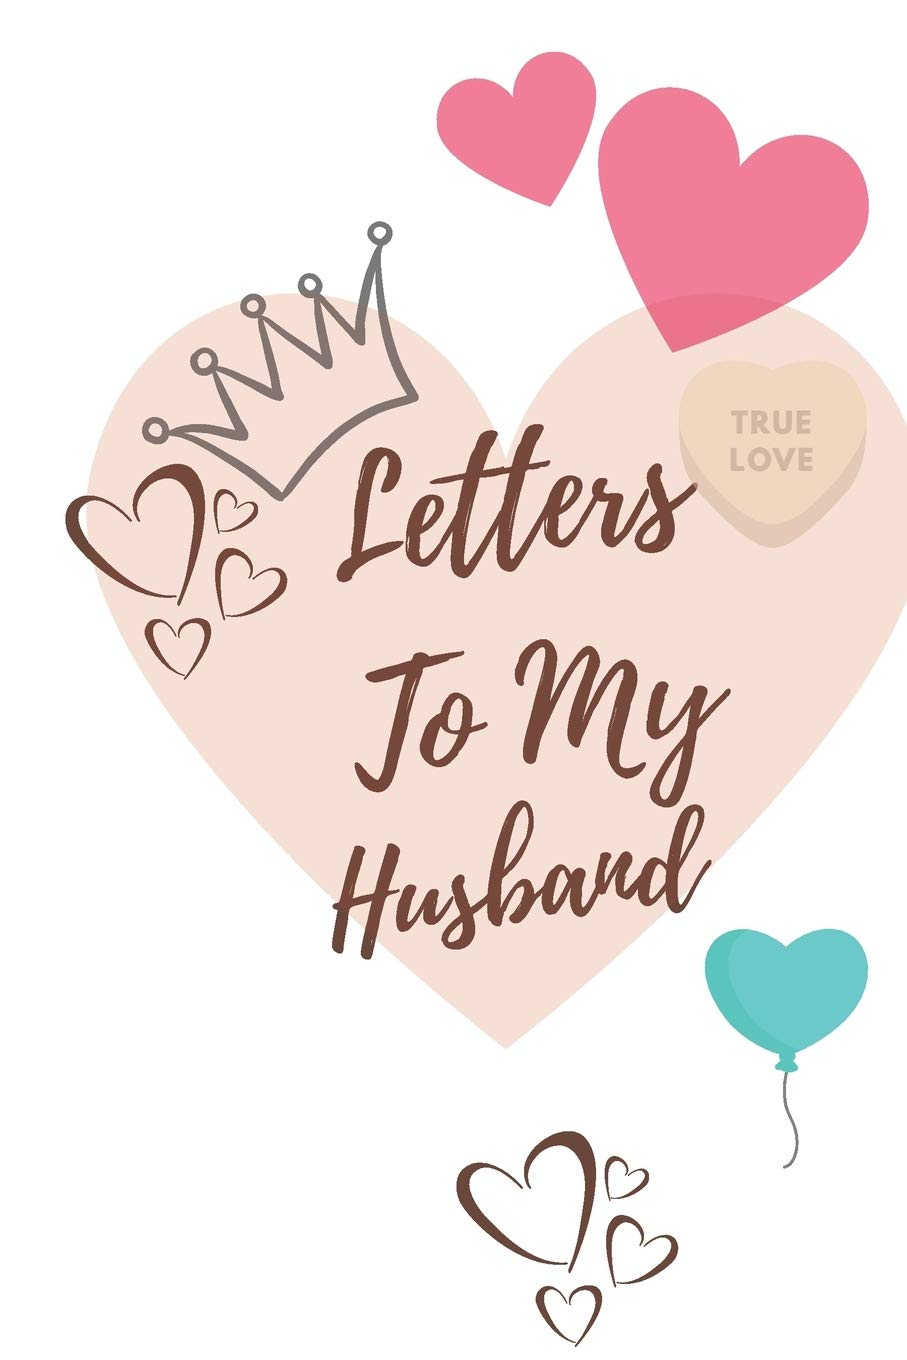 Anniversary Letter To Husband from images-na.ssl-images-amazon.com